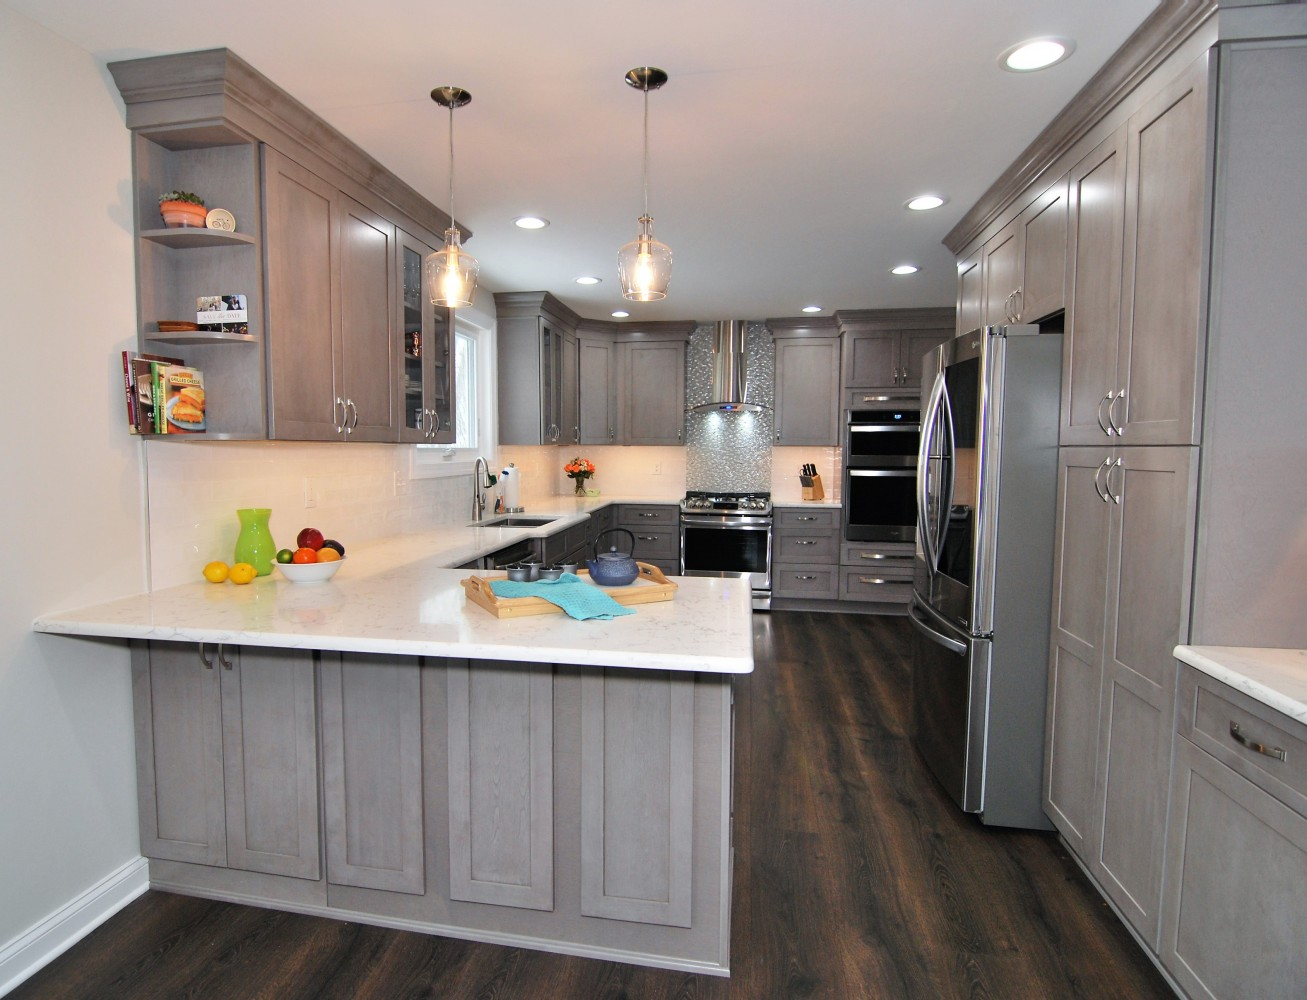 Best Kitchen Designs South Jersey | Collingswood NJ | Distinctive Interior Designs